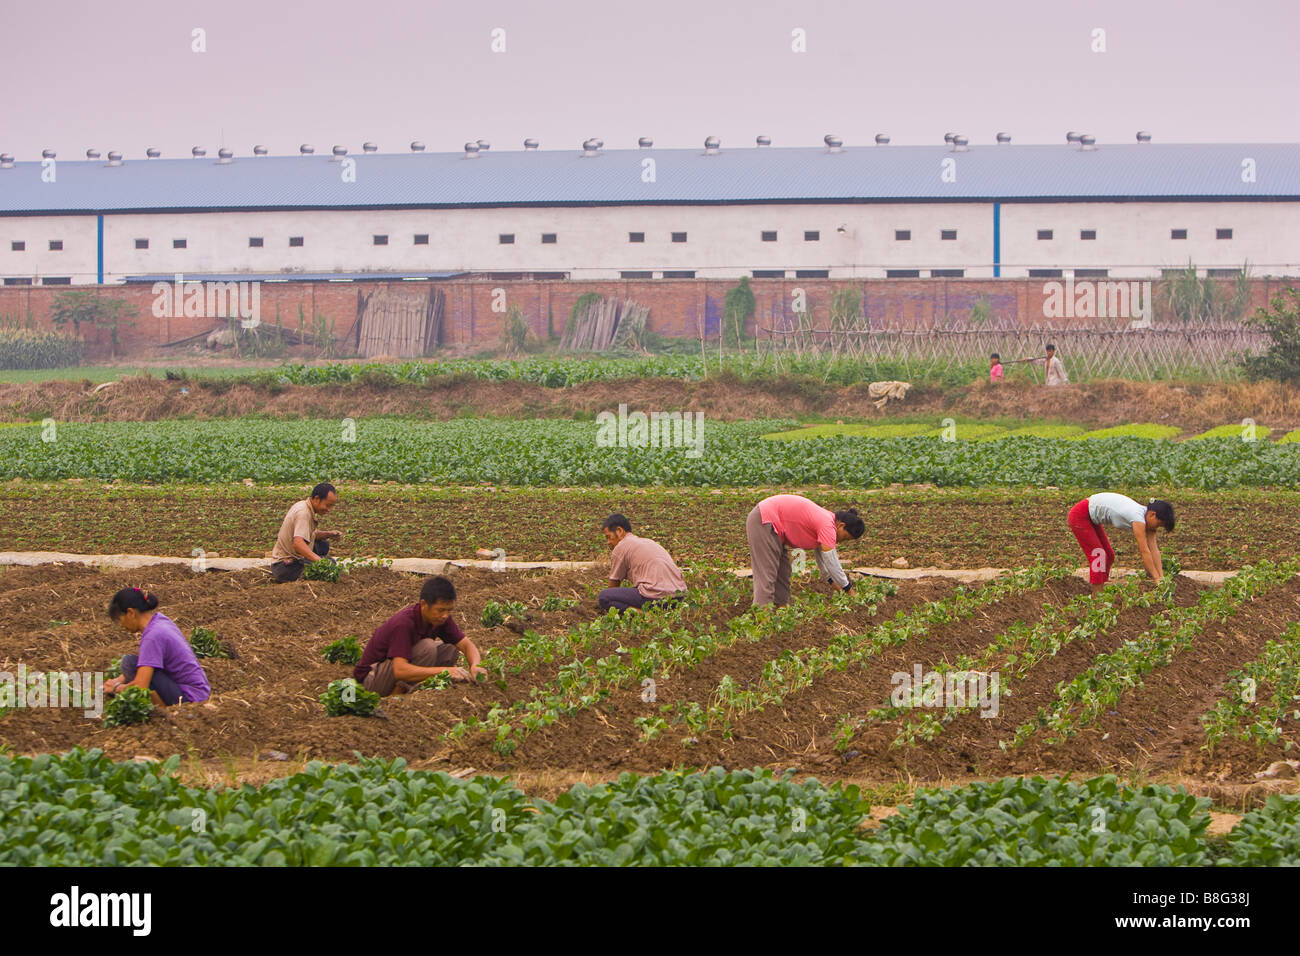 PAN YU, GUANGDONG PROVINCE, CHINA Agricultural workers plant